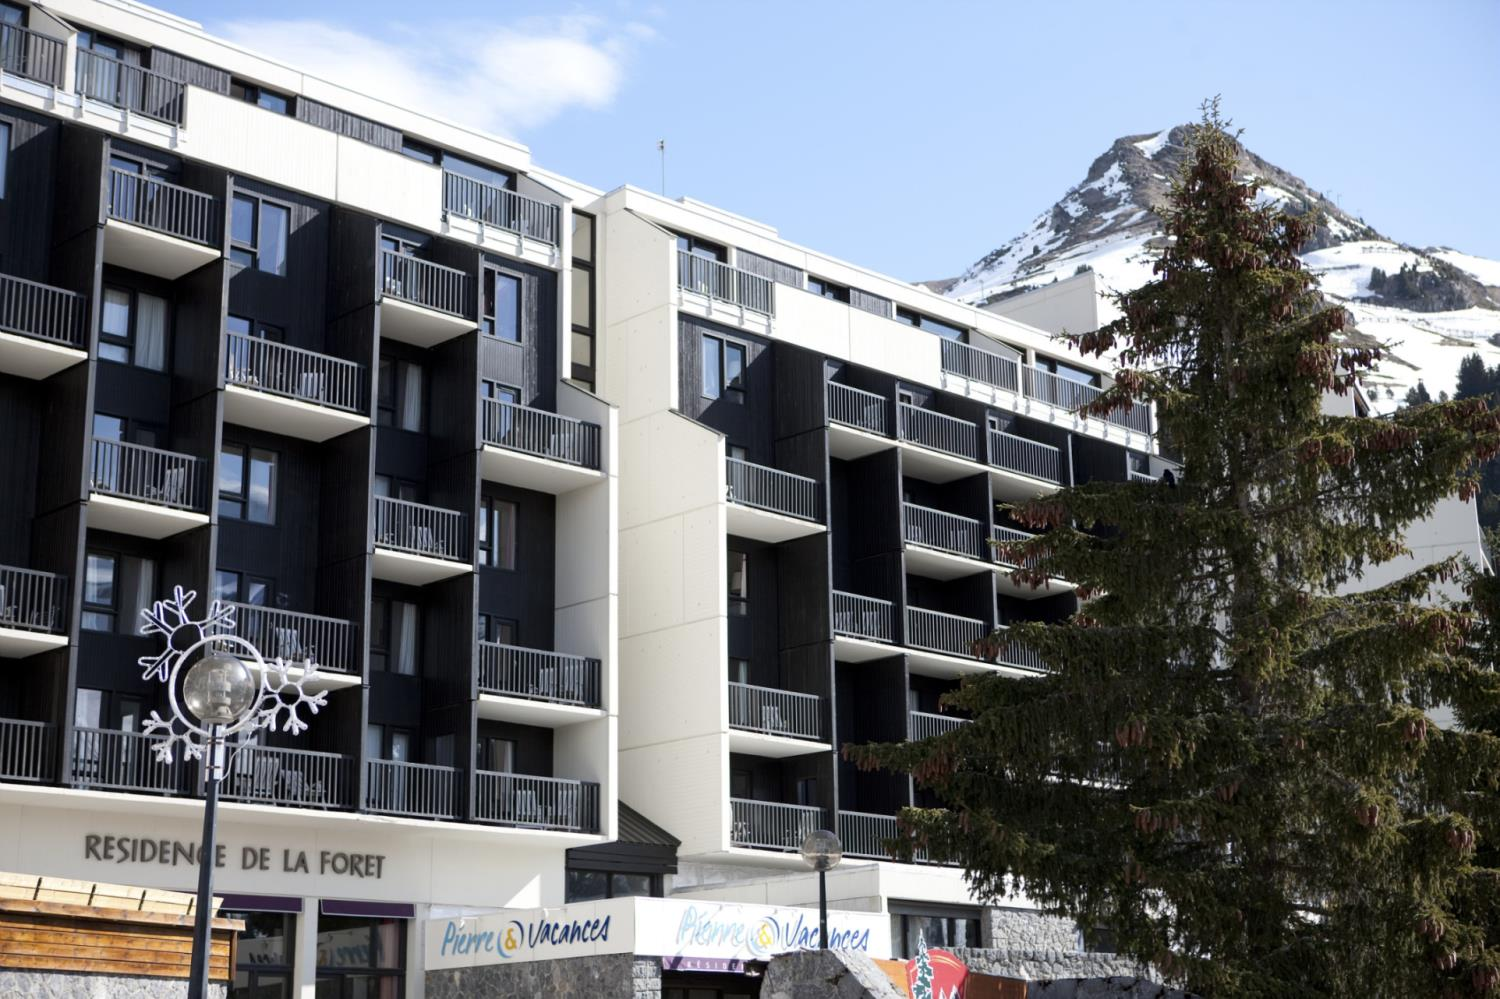 Holiday apartment La Foret 3p 6/7 South (669587), Flaine, Upper Savoy, Rhône-Alps, France, picture 1